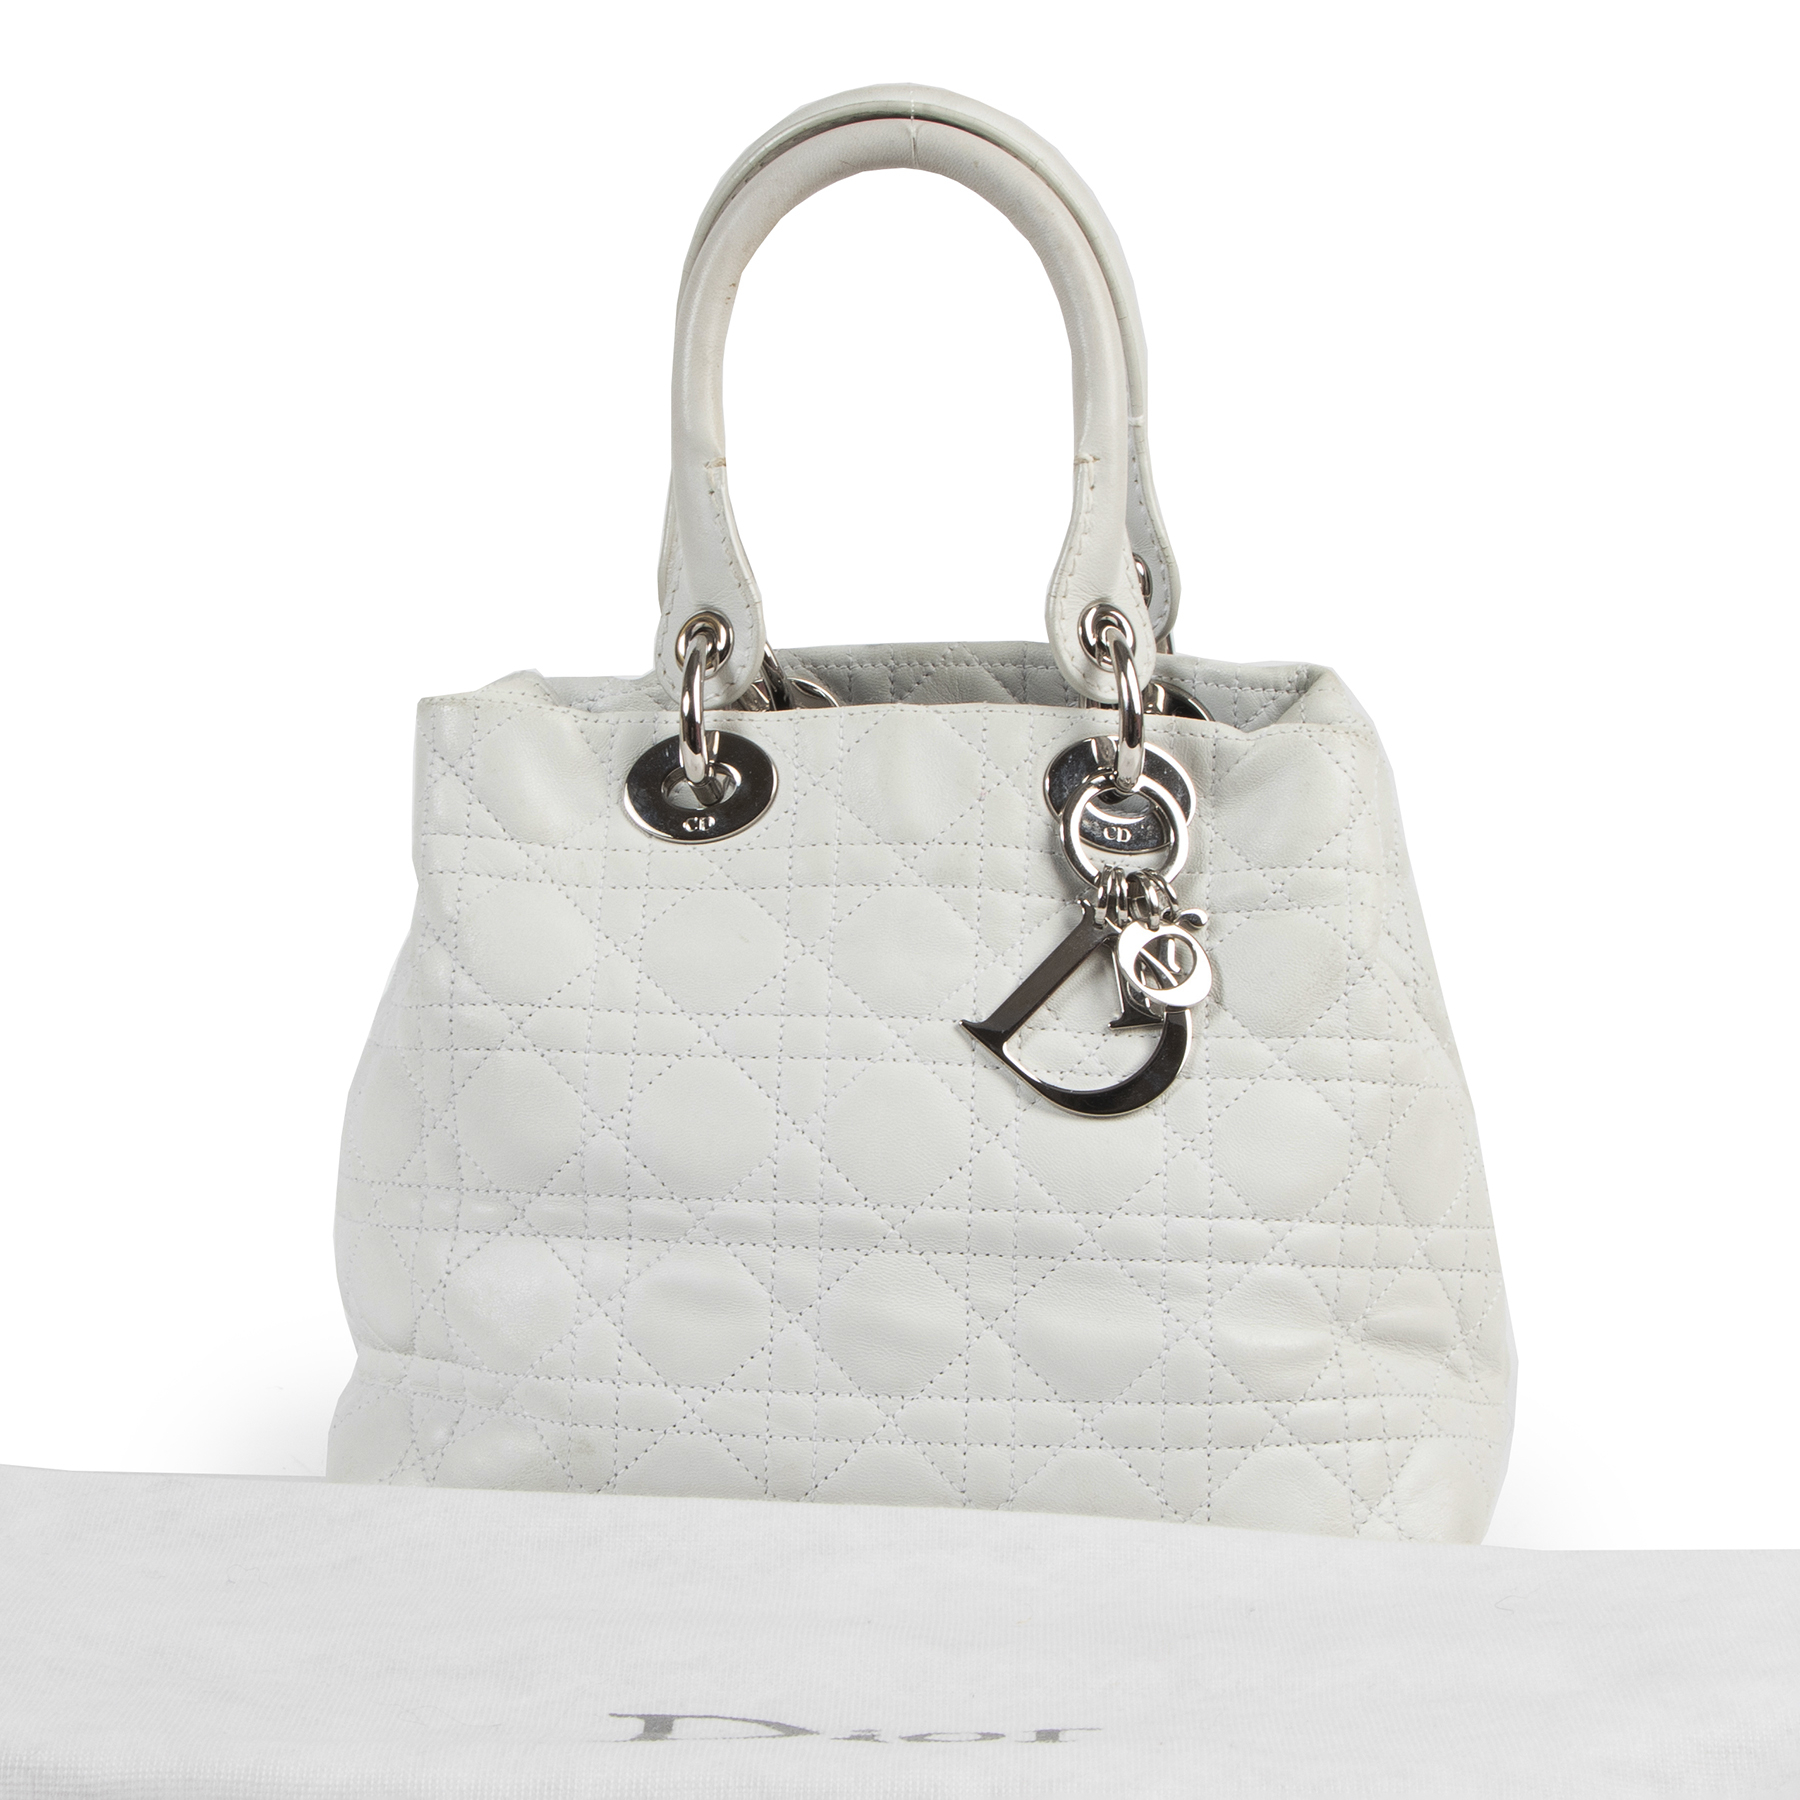 Are you looking for an authentic designer Dior White Leather Lady Dior Bag